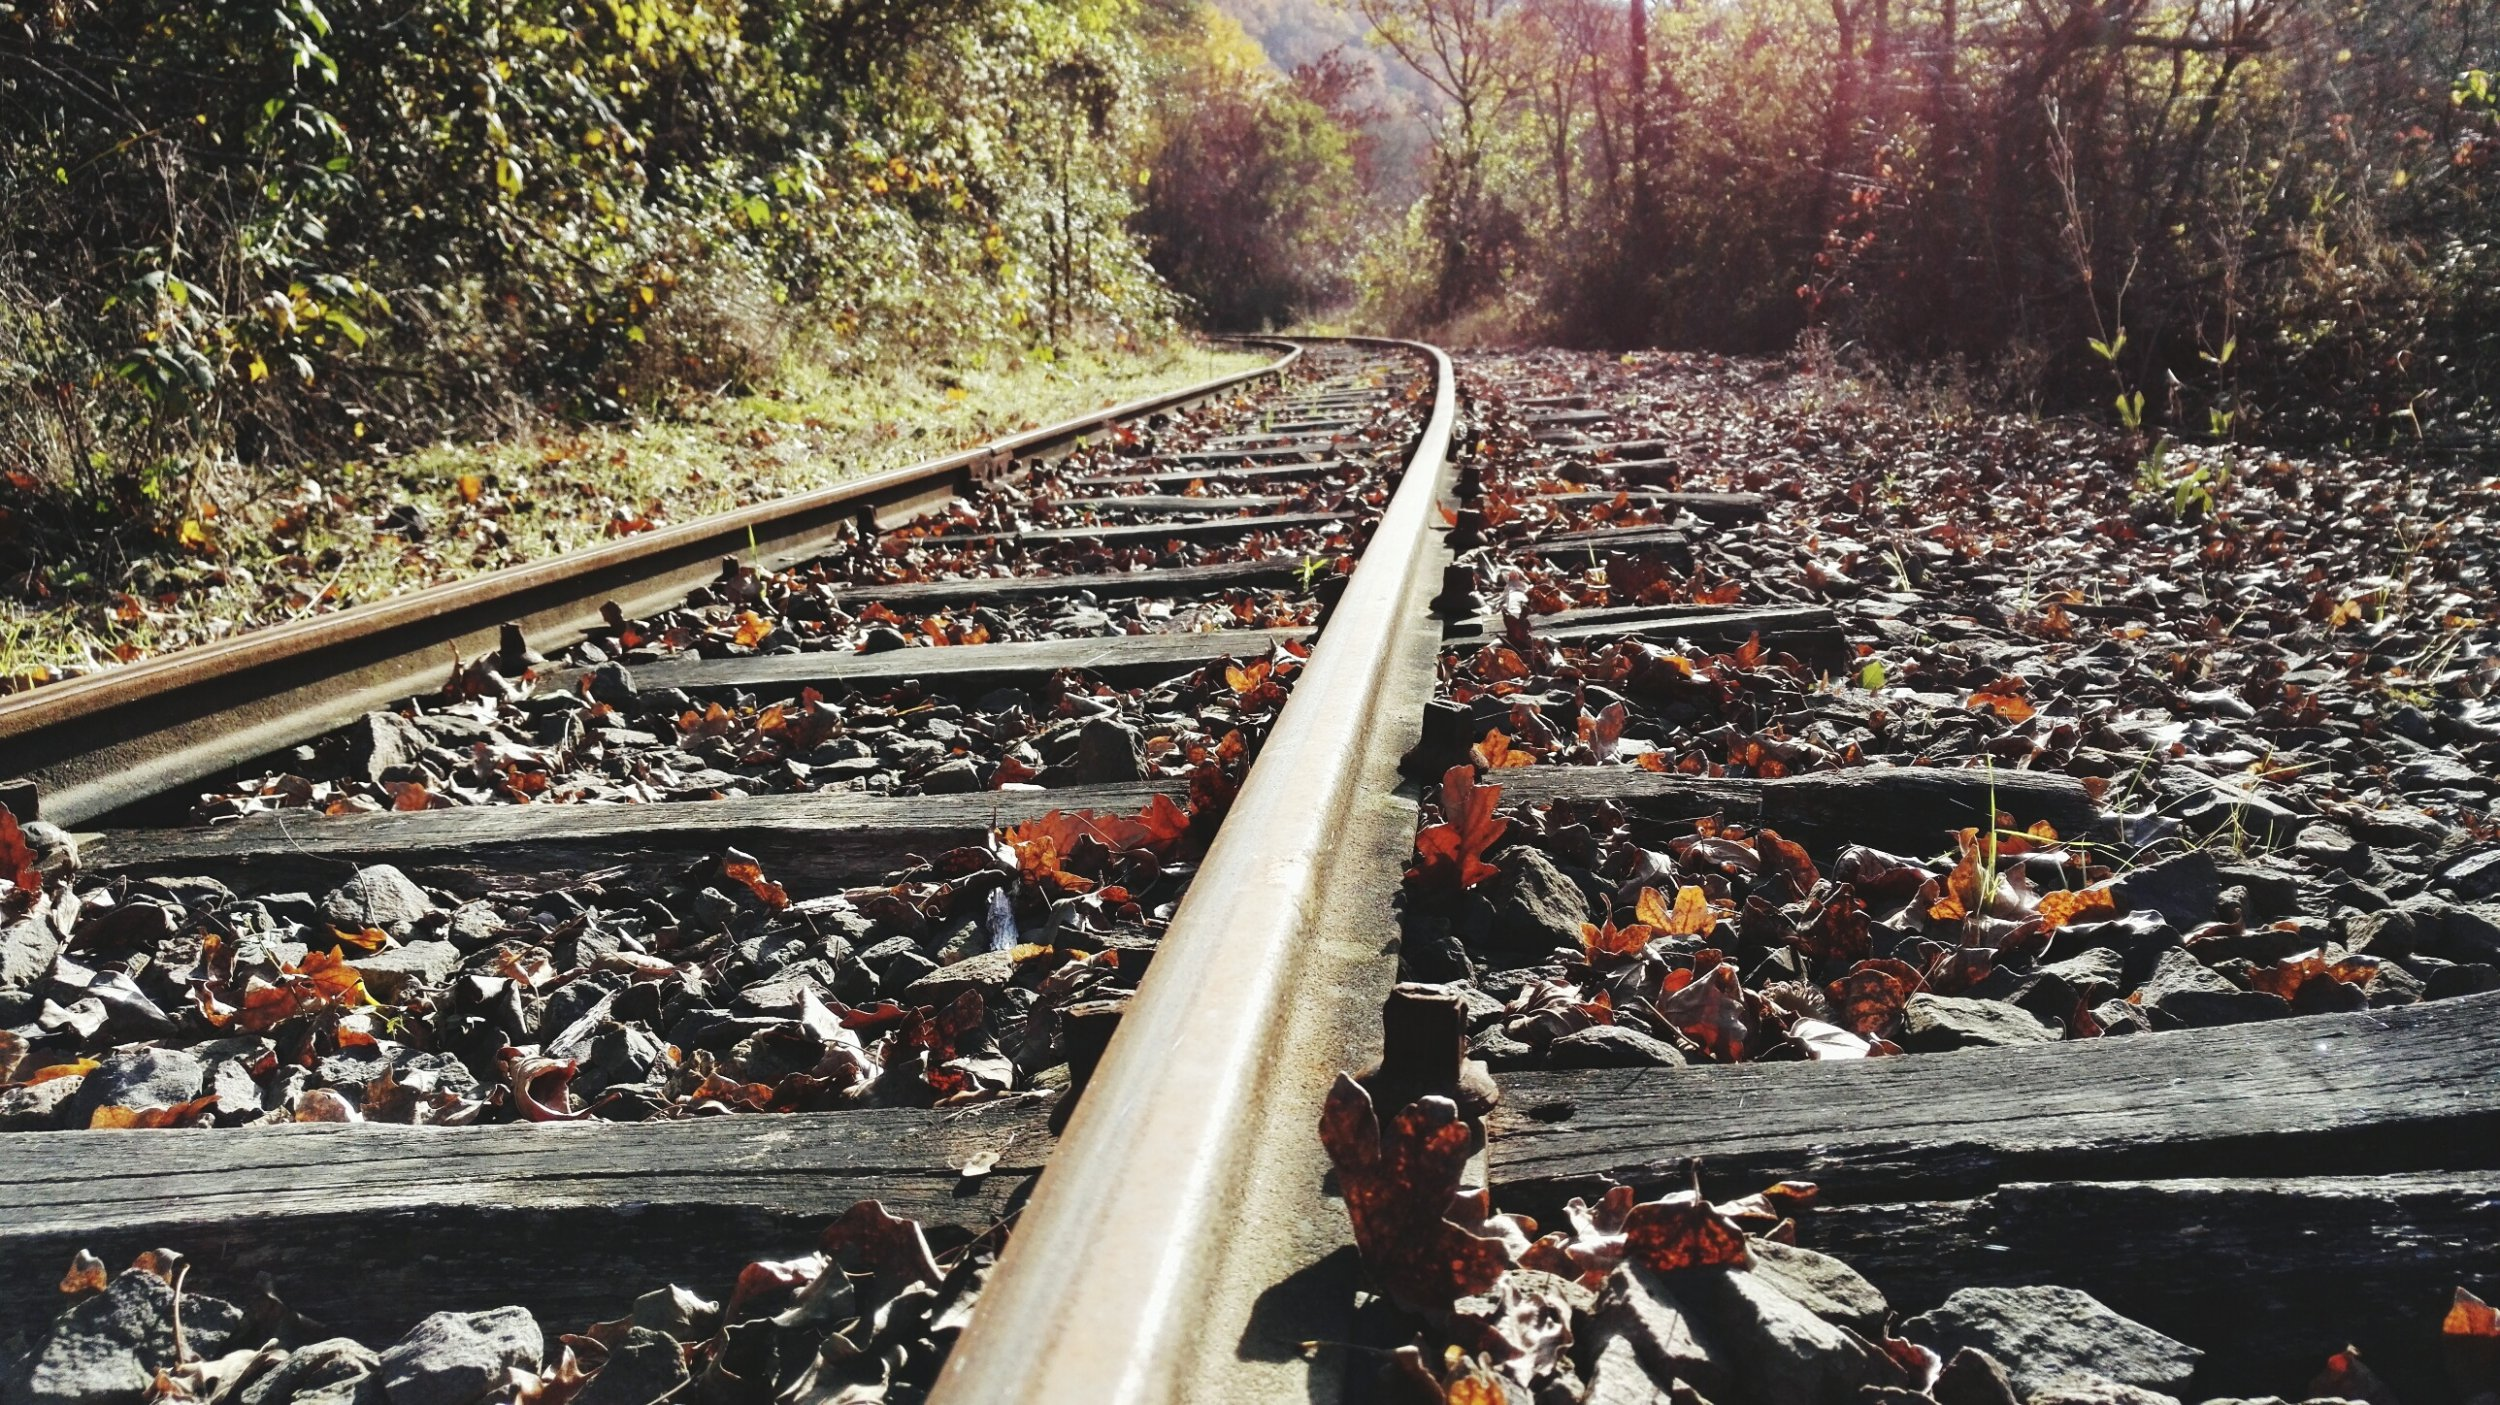 Just why are leaves on the line ruining your train journey?